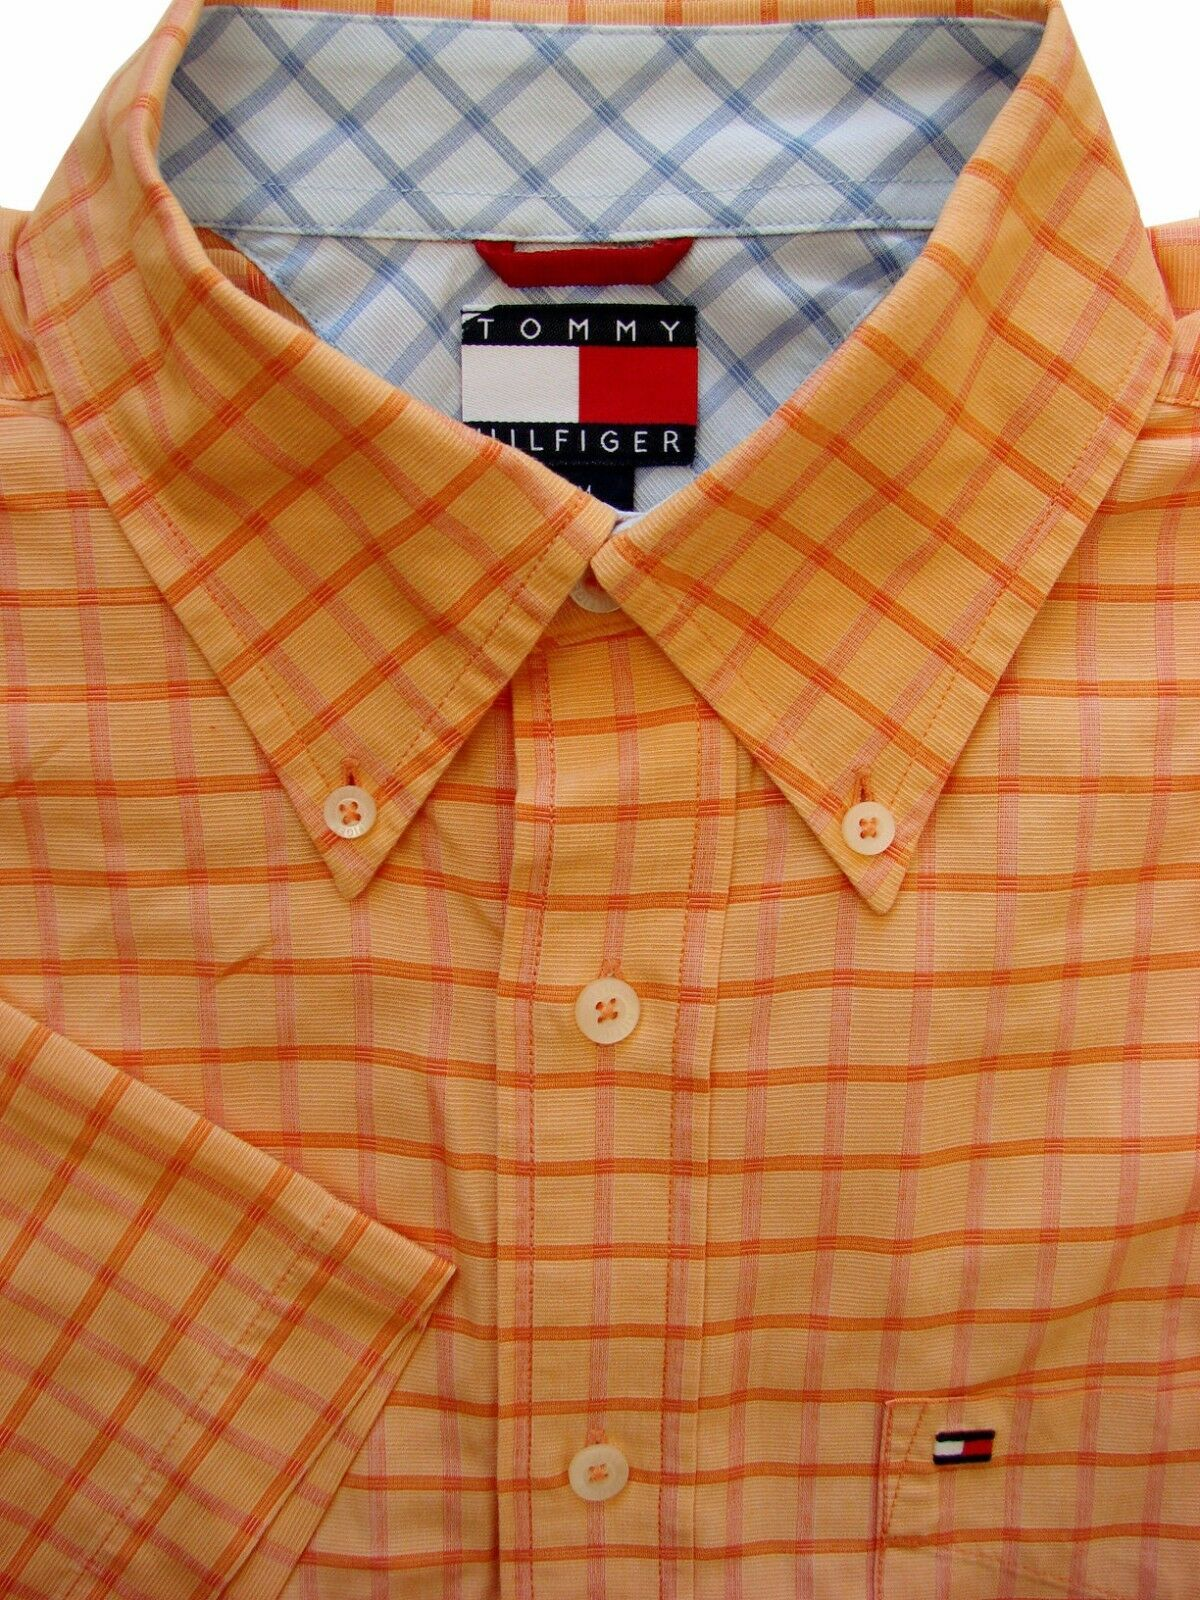 781eced873f2 TOMMY HILFIGER Shirt Mens 16 M Orange - Check SHORT SLEEVE - Brandinity